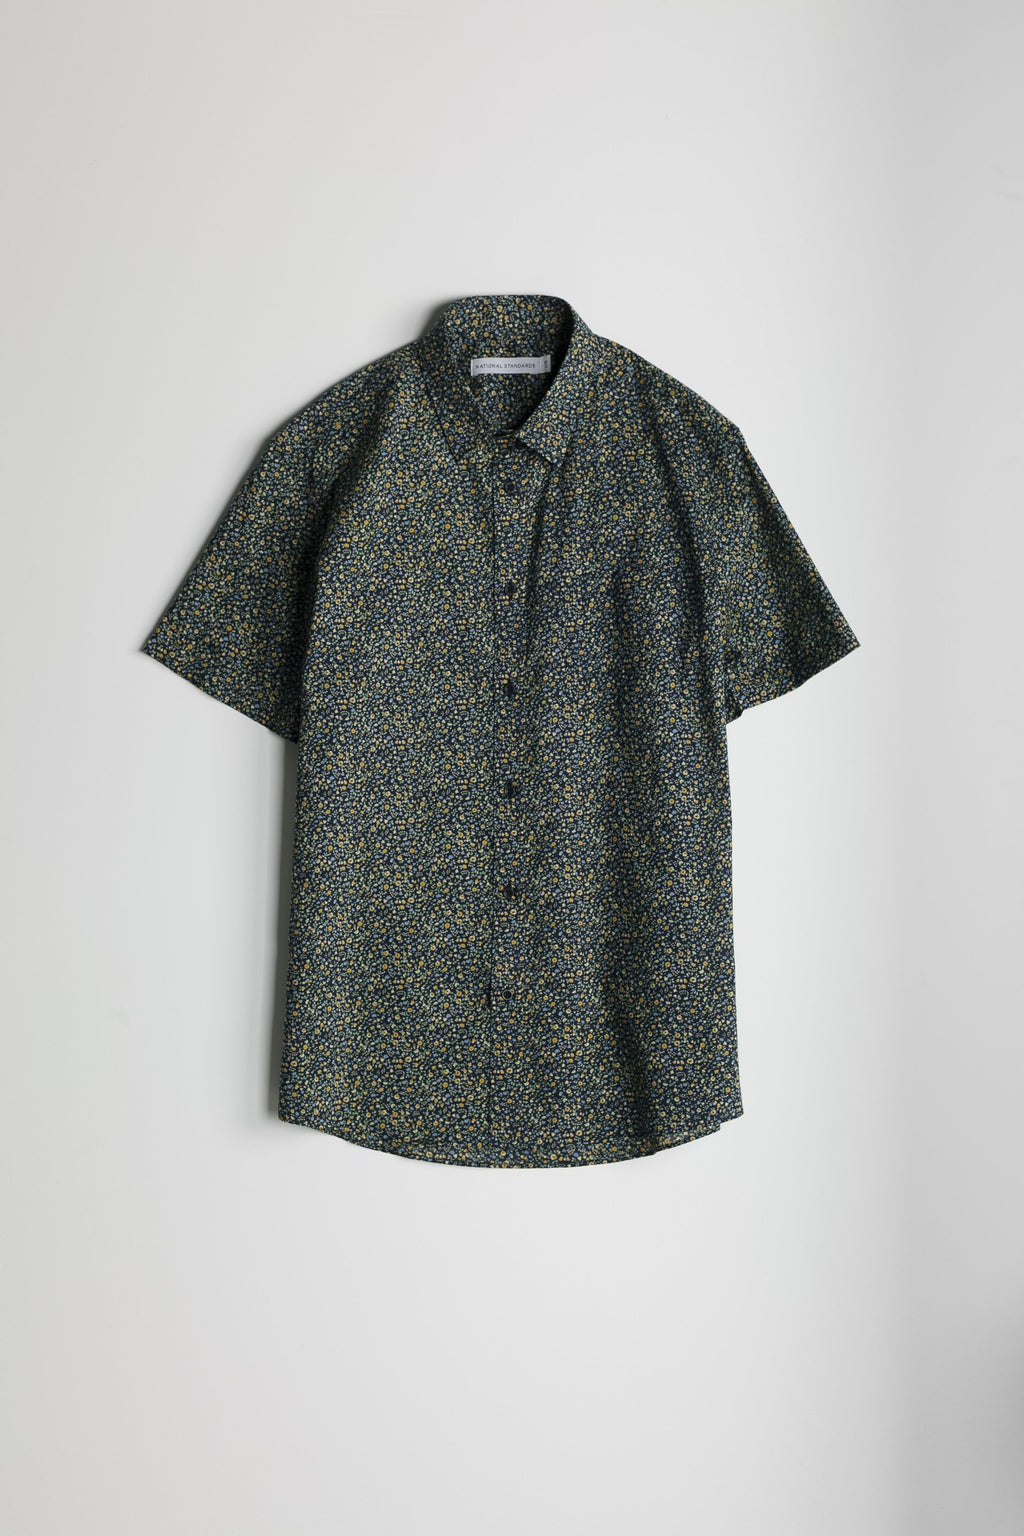 japanese-floral-print-in-navy-and-mustard 01